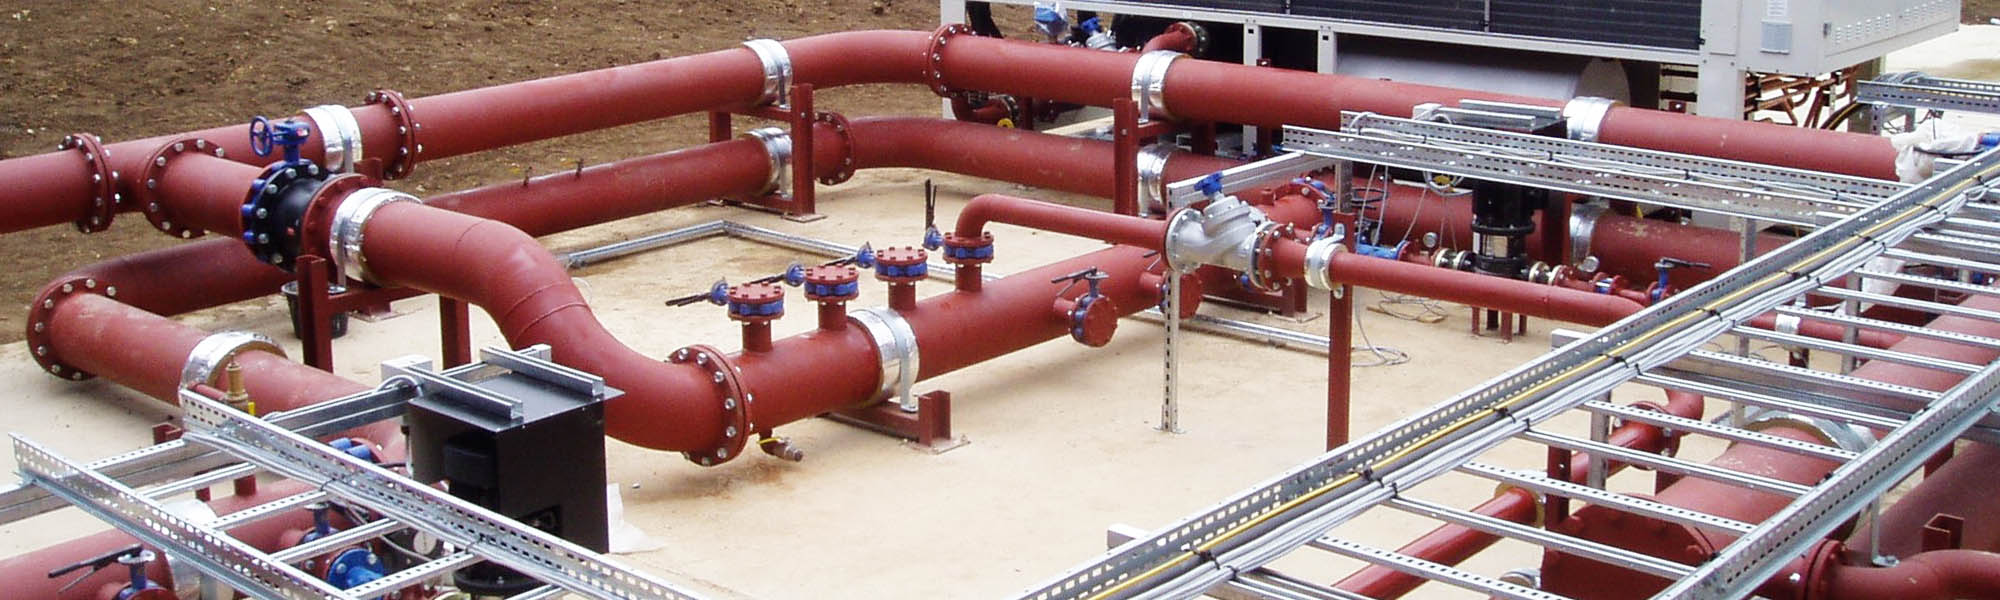 Industrial Pipework Installations